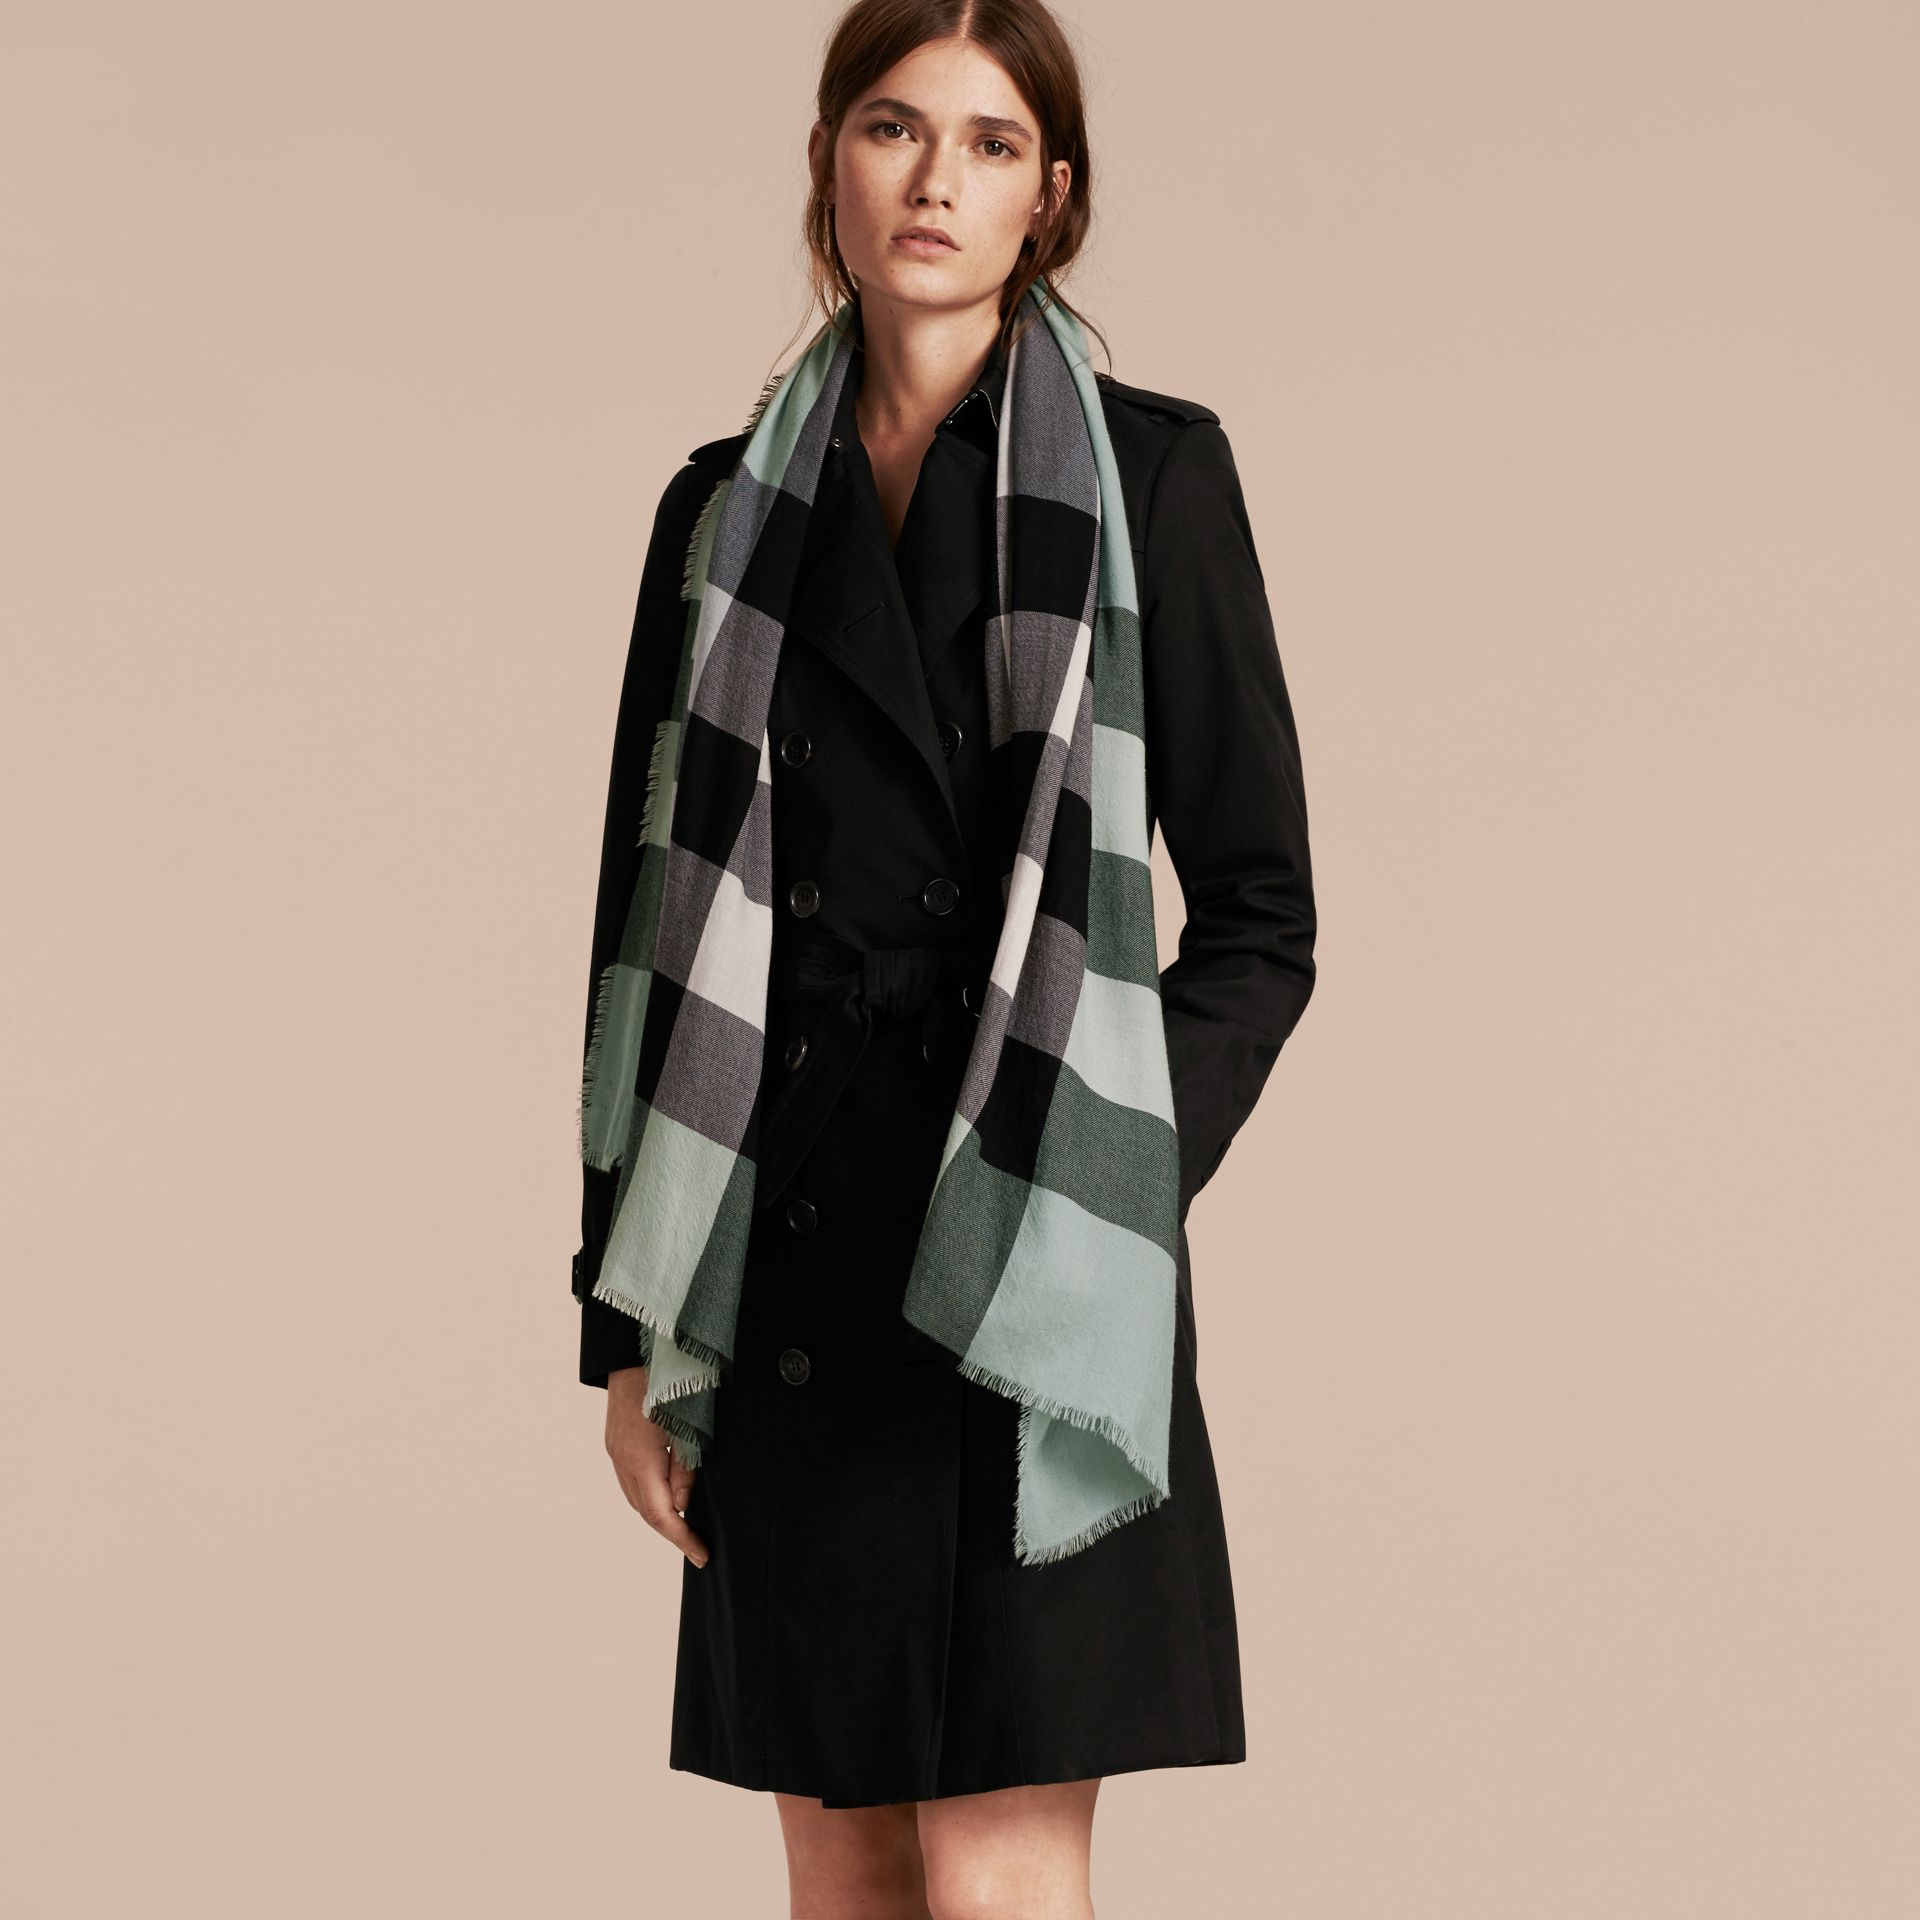 The Lightweight Cashmere Scarf in Check in Dusty Mint | Burberry - gallery image 3